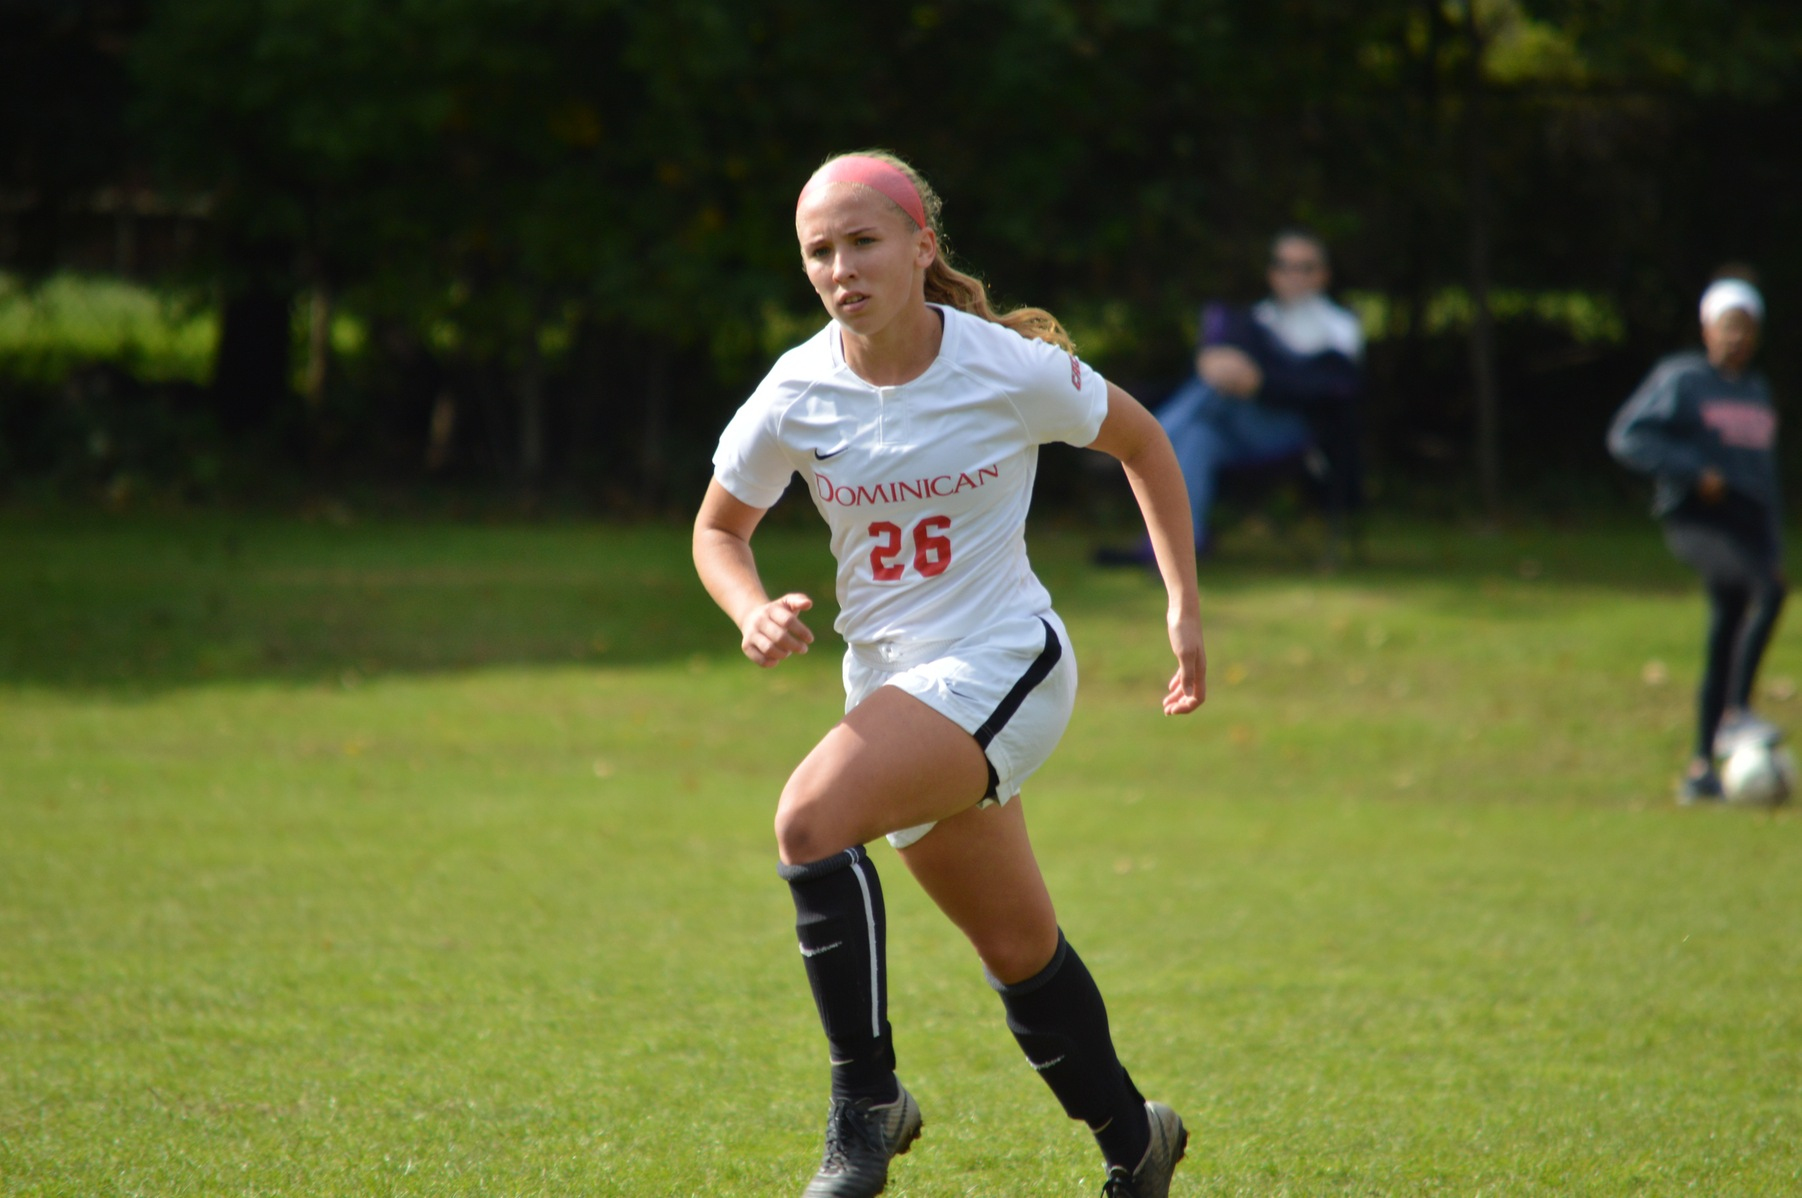 GEARY NAMED CACC ROOKIE OF THE WEEK